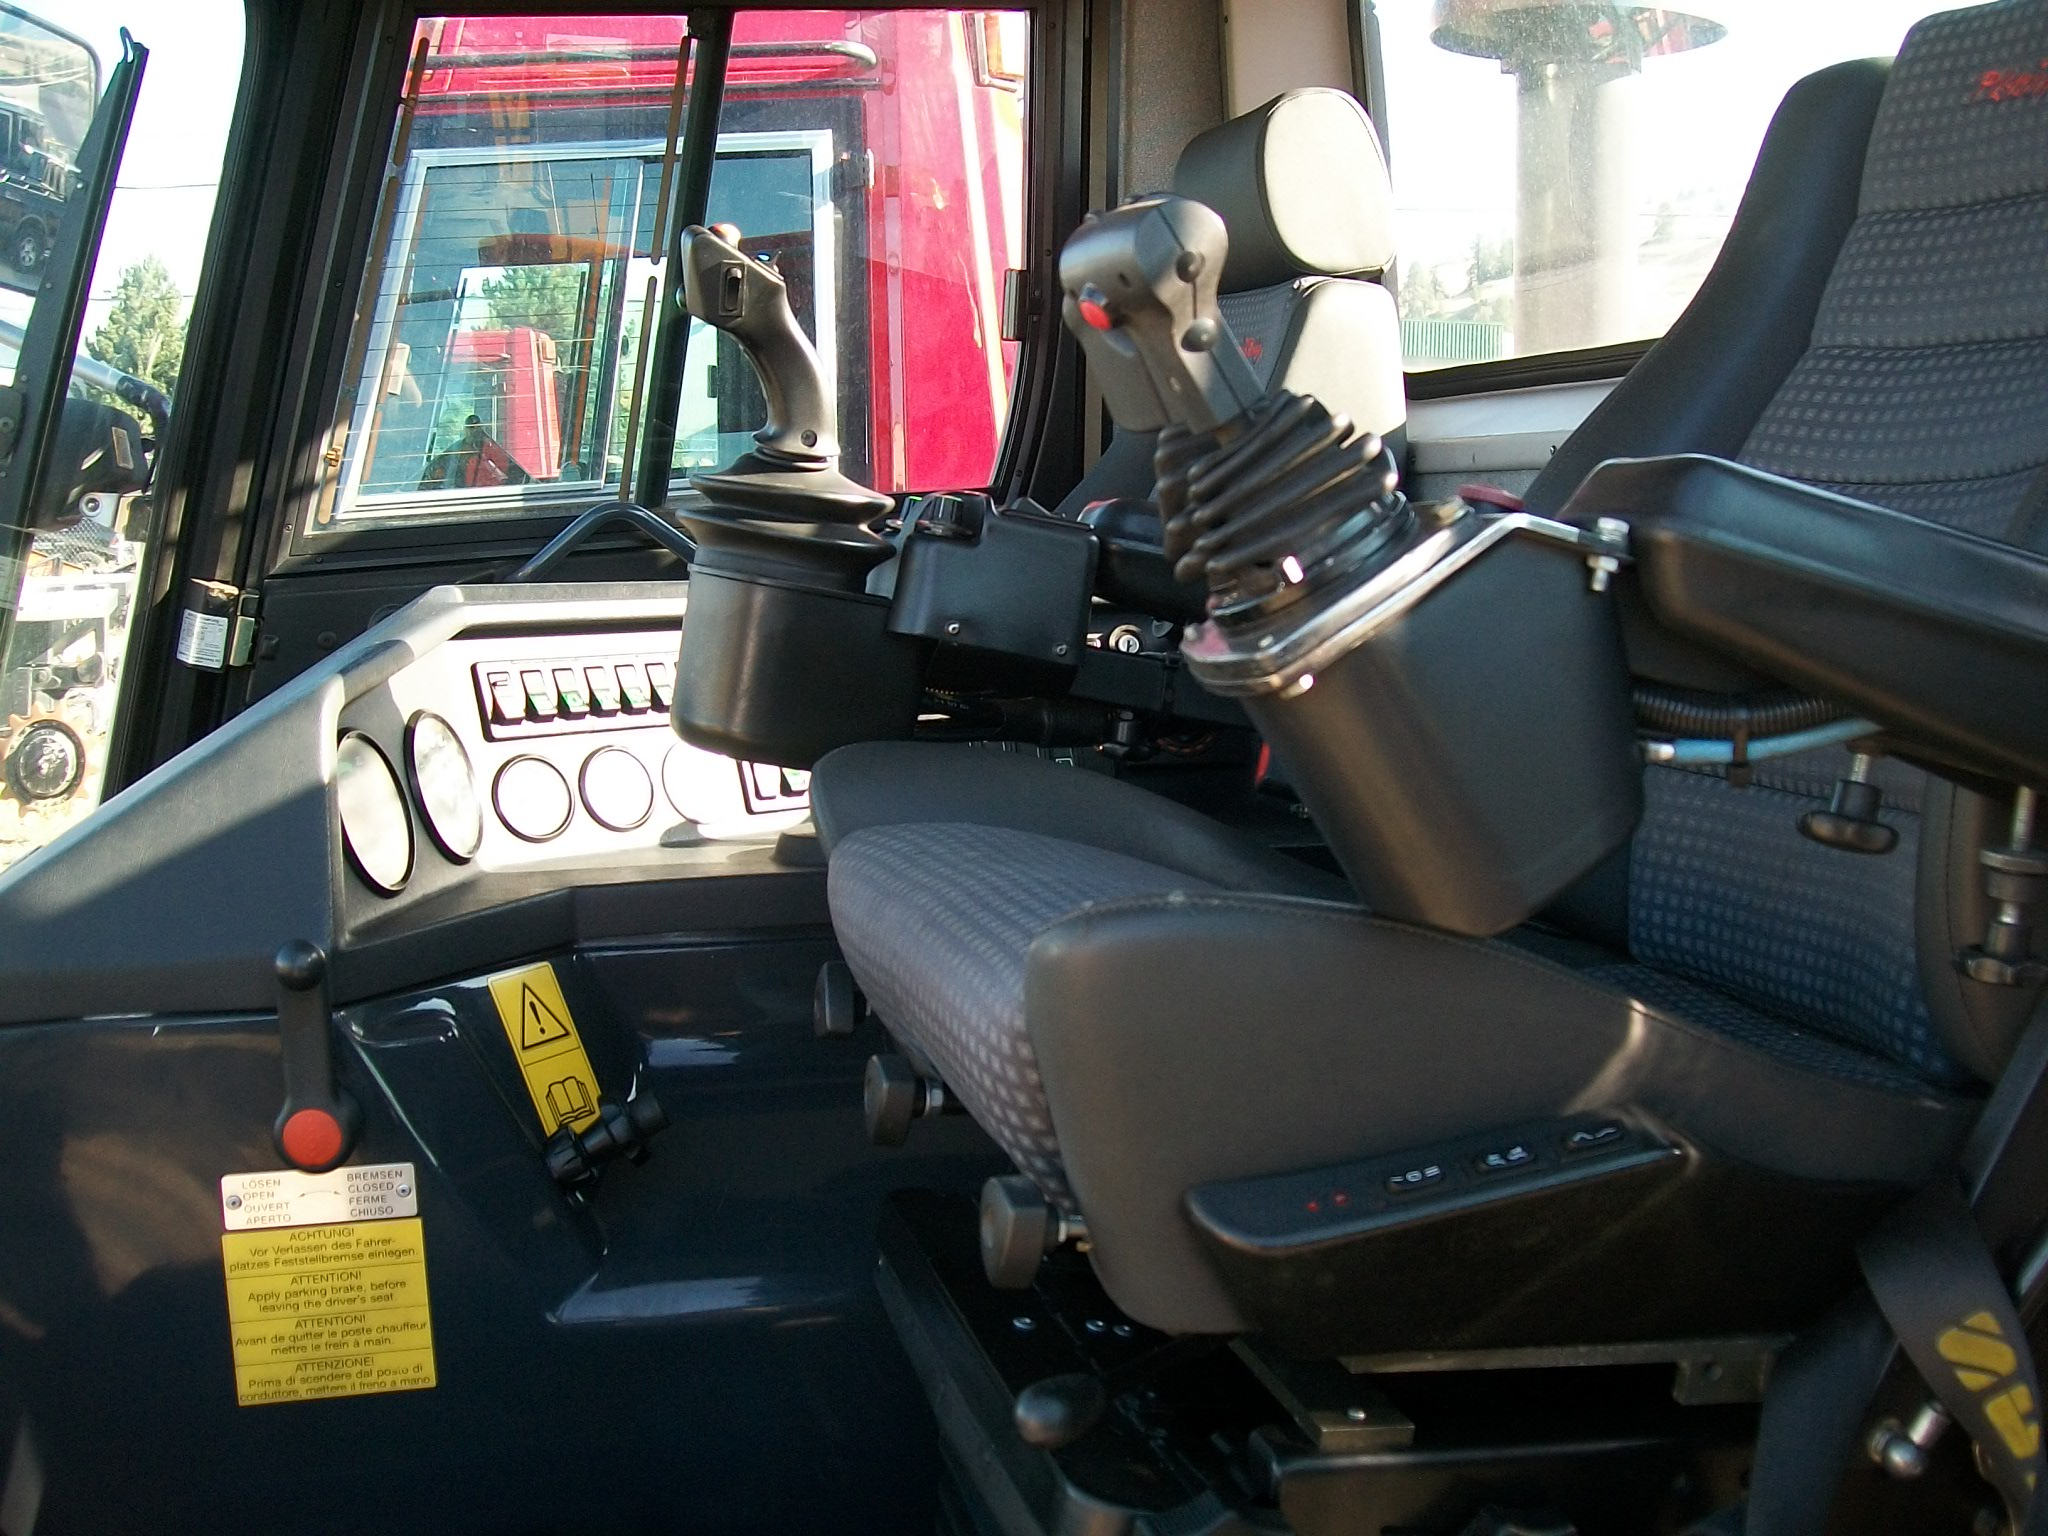 Pisten bully 100 for sale -  Park Bully Edge Interior